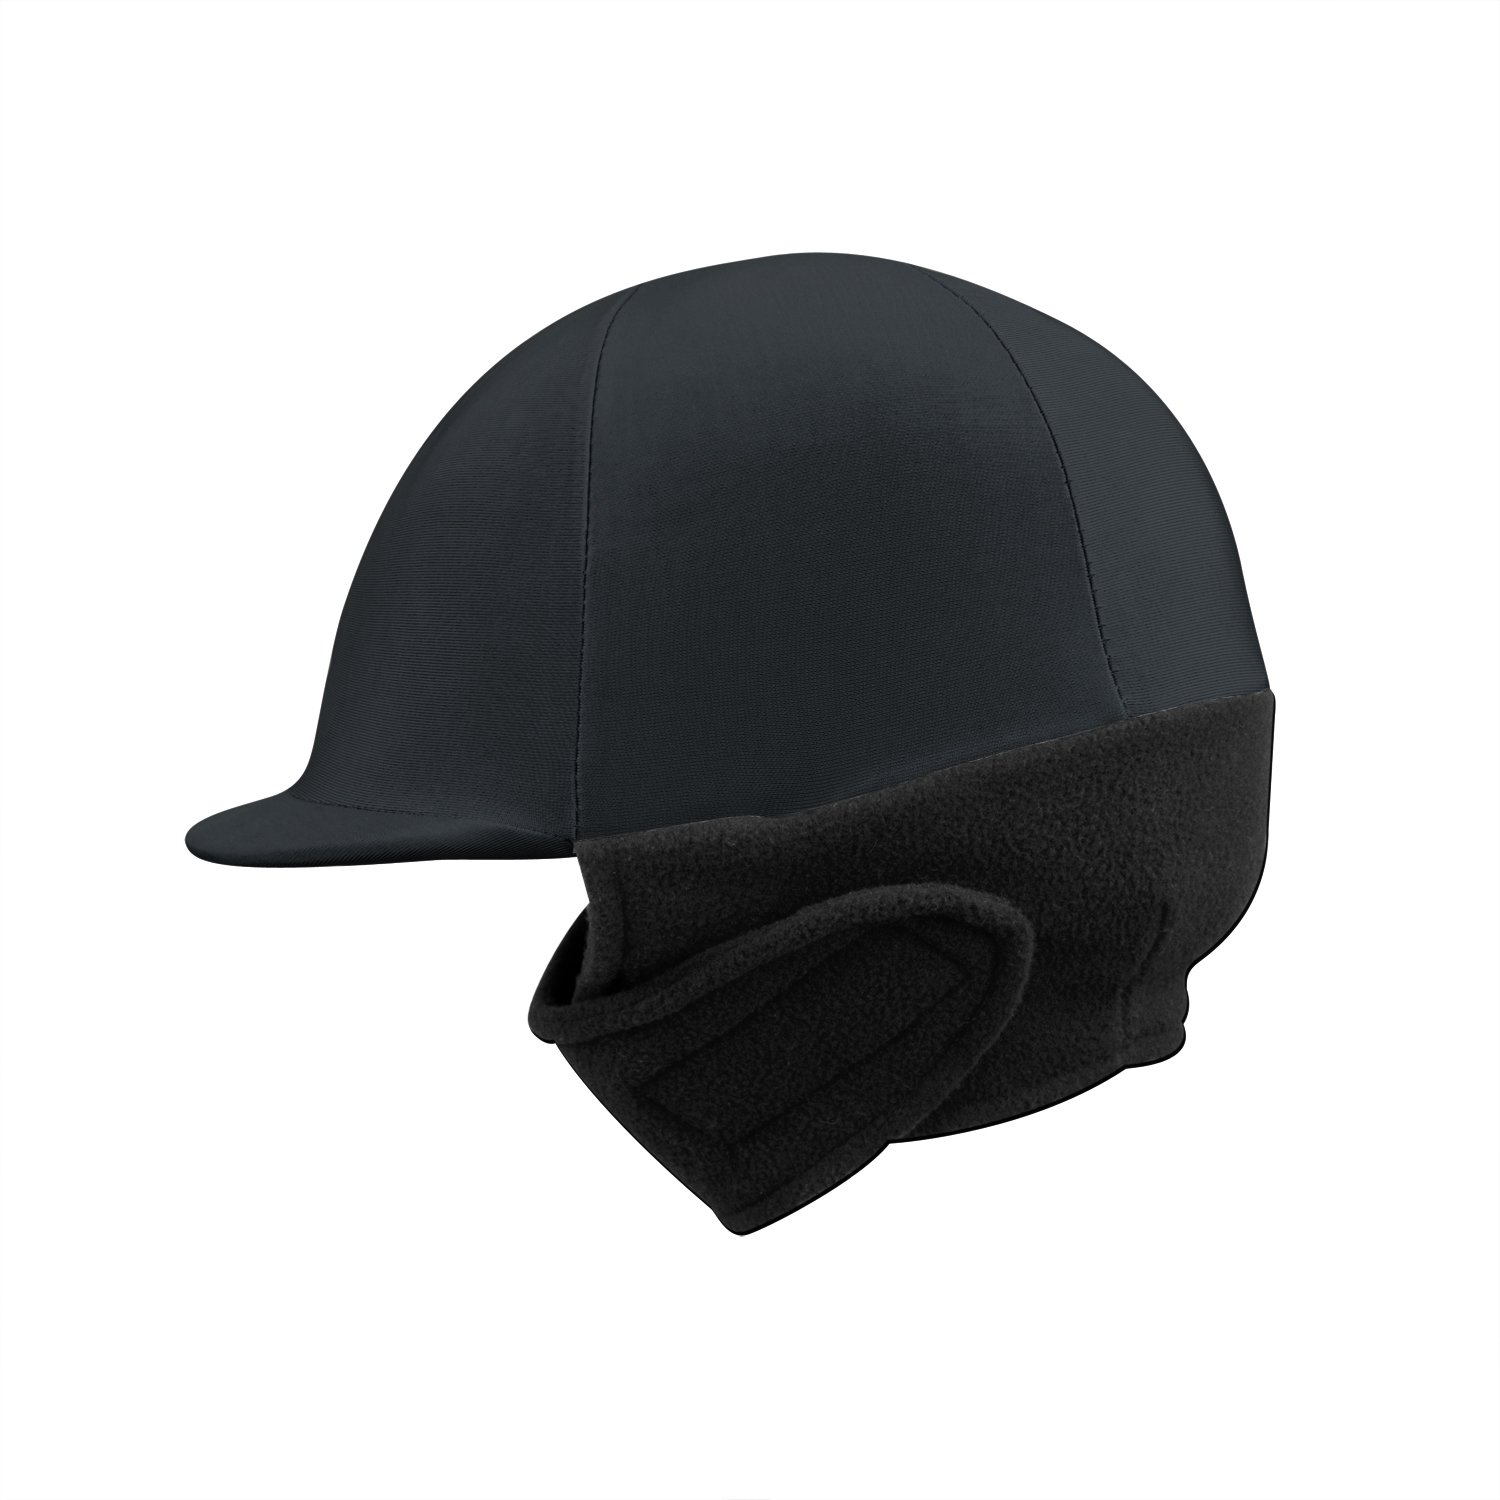 Perri's Leather Winter Helmet Cover Black One Size Perri' s 10W